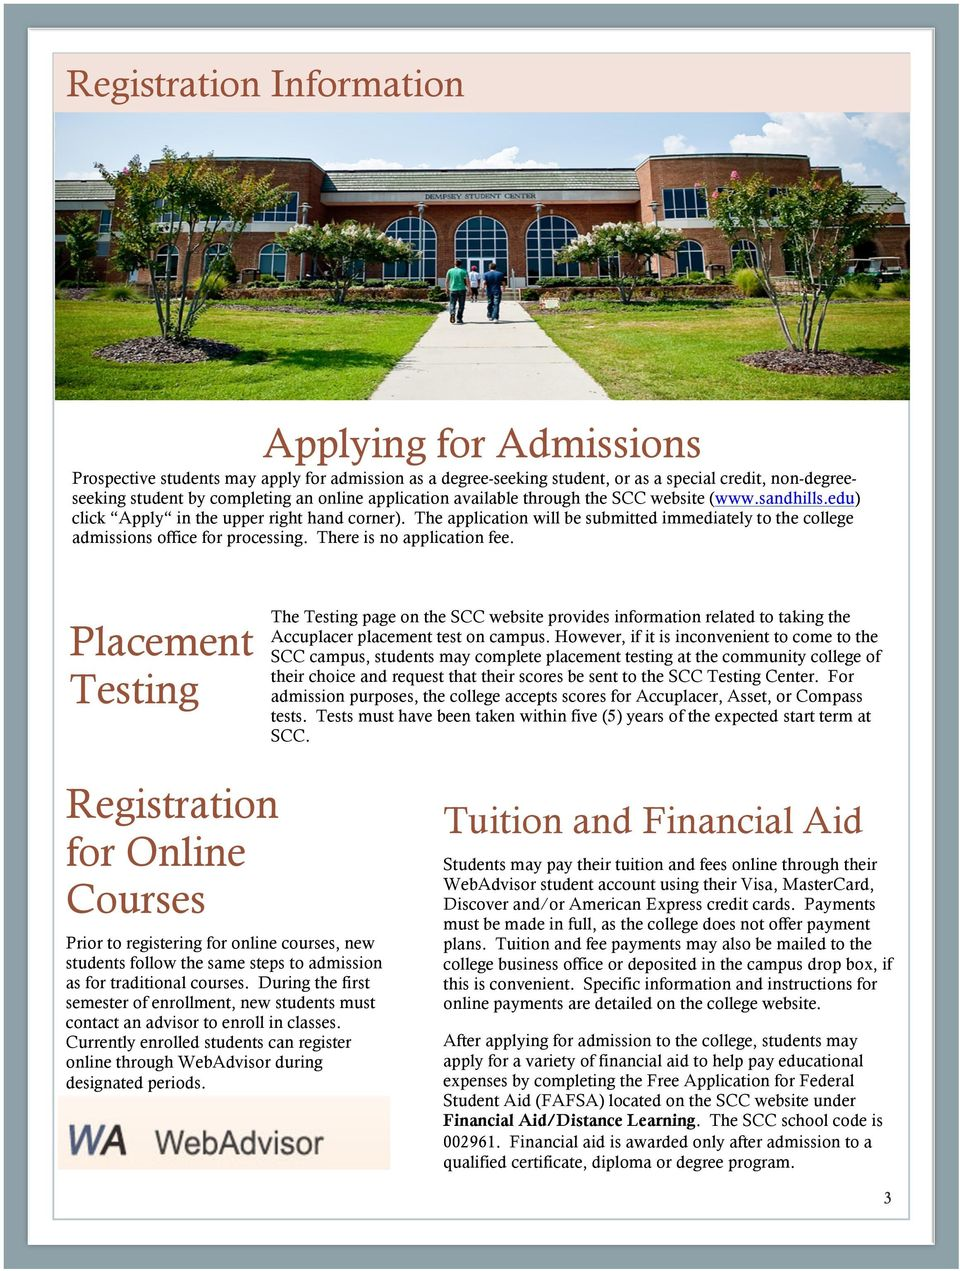 The application will be submitted immediately to the college admissions office for processing. There is no application fee.